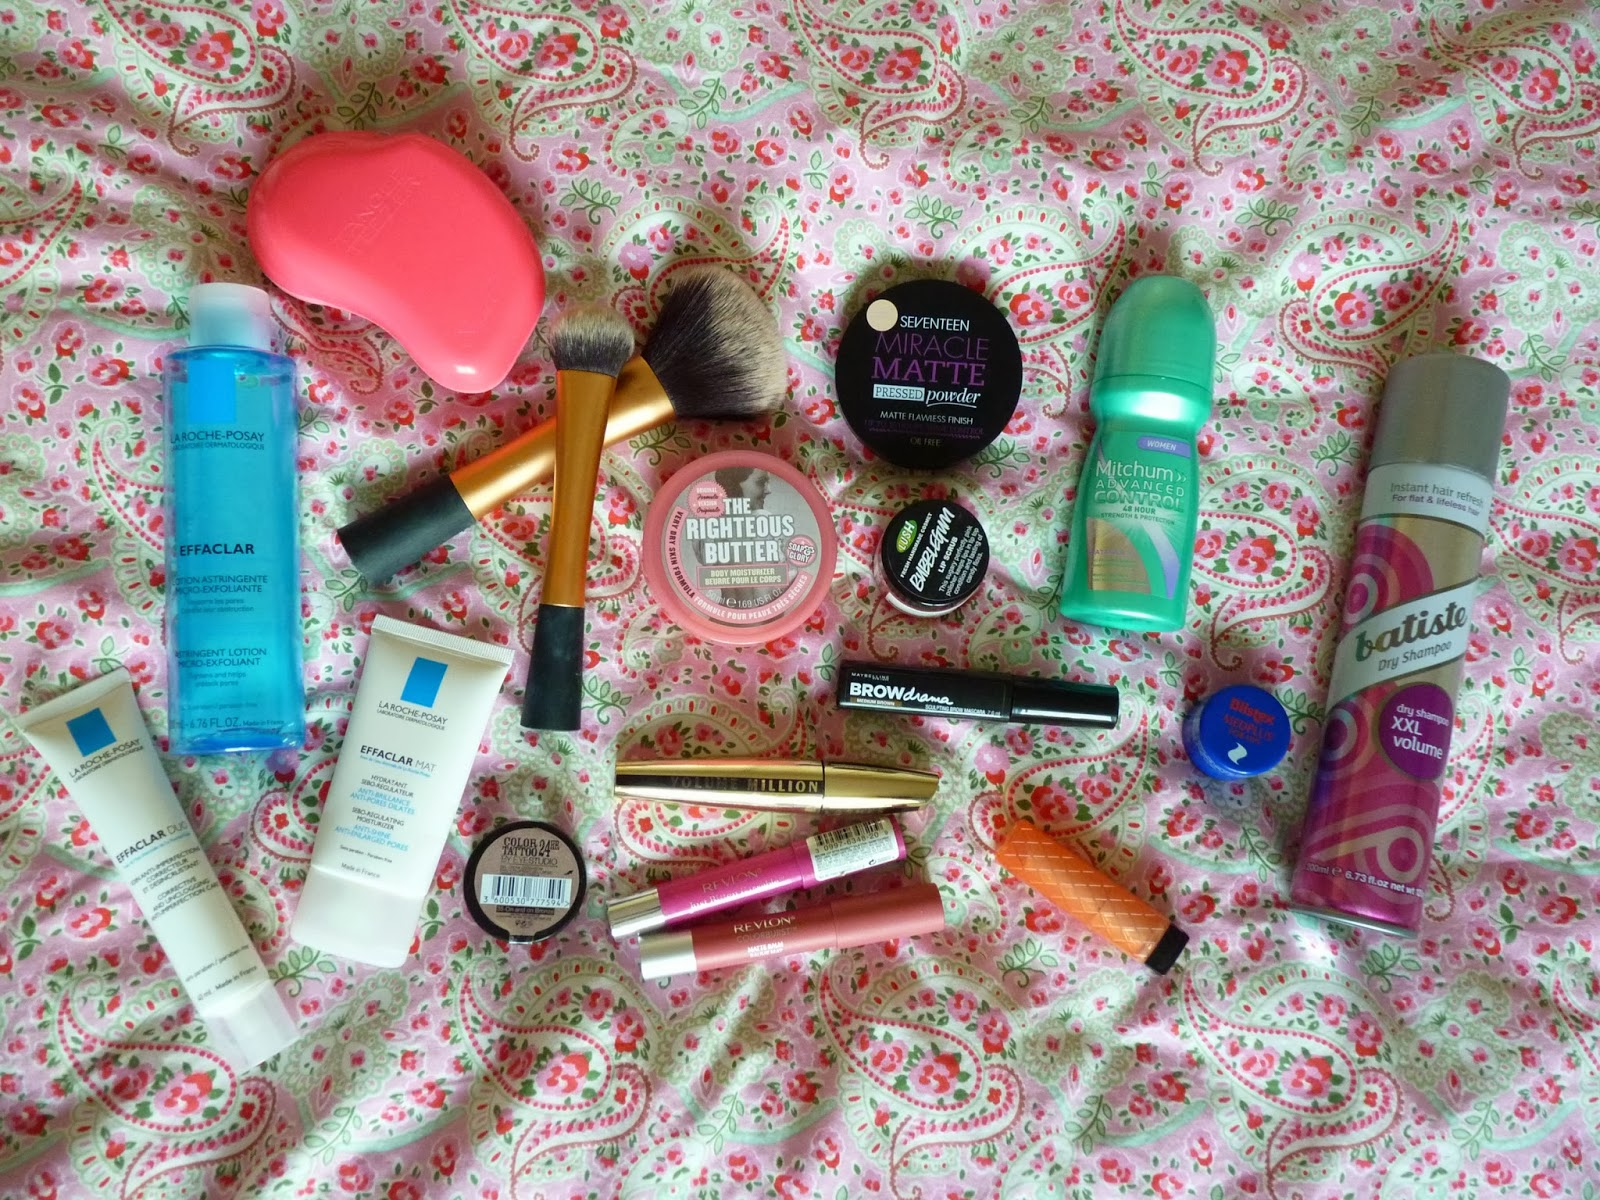 High Street Beauty Makeup Favourites La Roche Posay Tangle Teacer Revlon L'Oreal Batiste Real Techniques Maybelline Soap and Glory